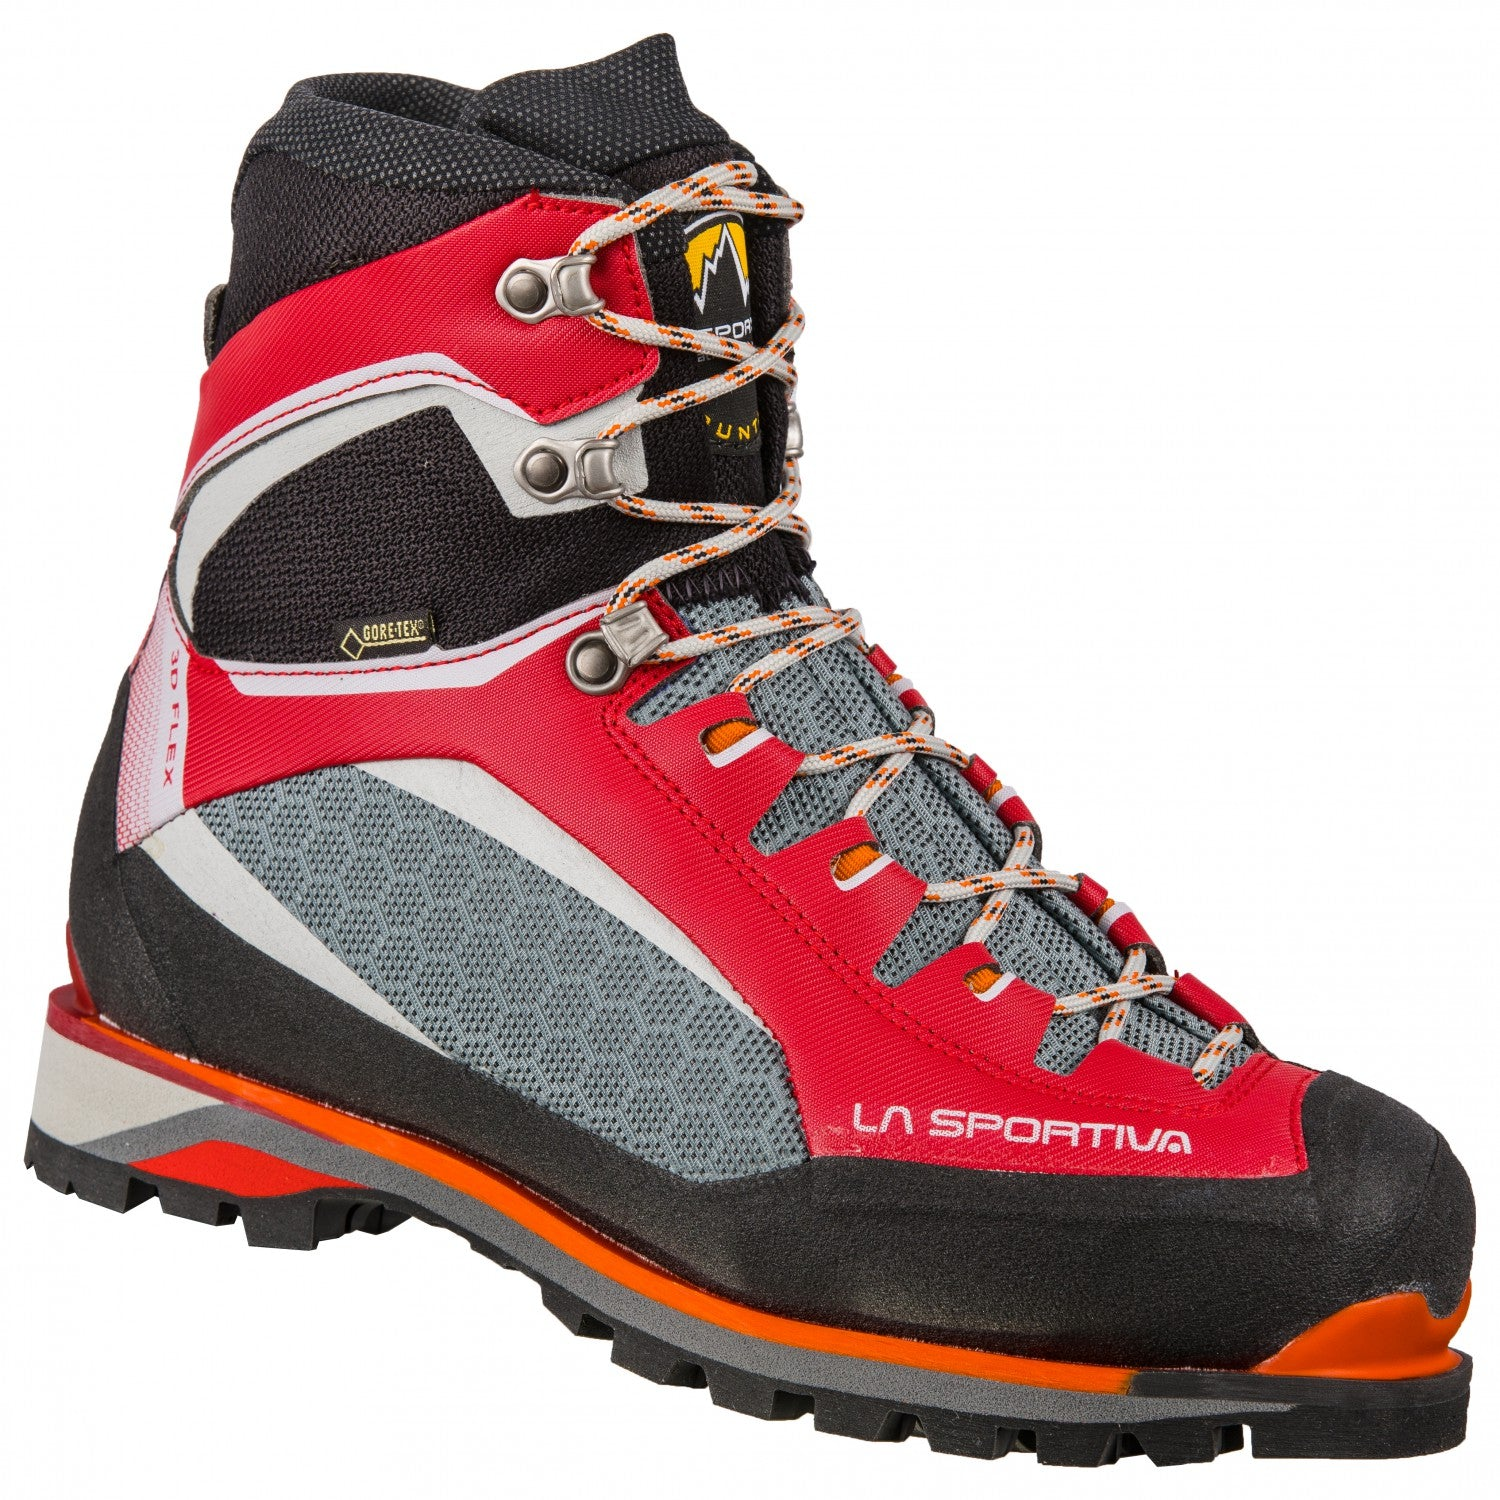 3b41b07ef52 La Sportiva Trango Tower Extreme GTX Womens mountaineering boot, in Red,  black and grey